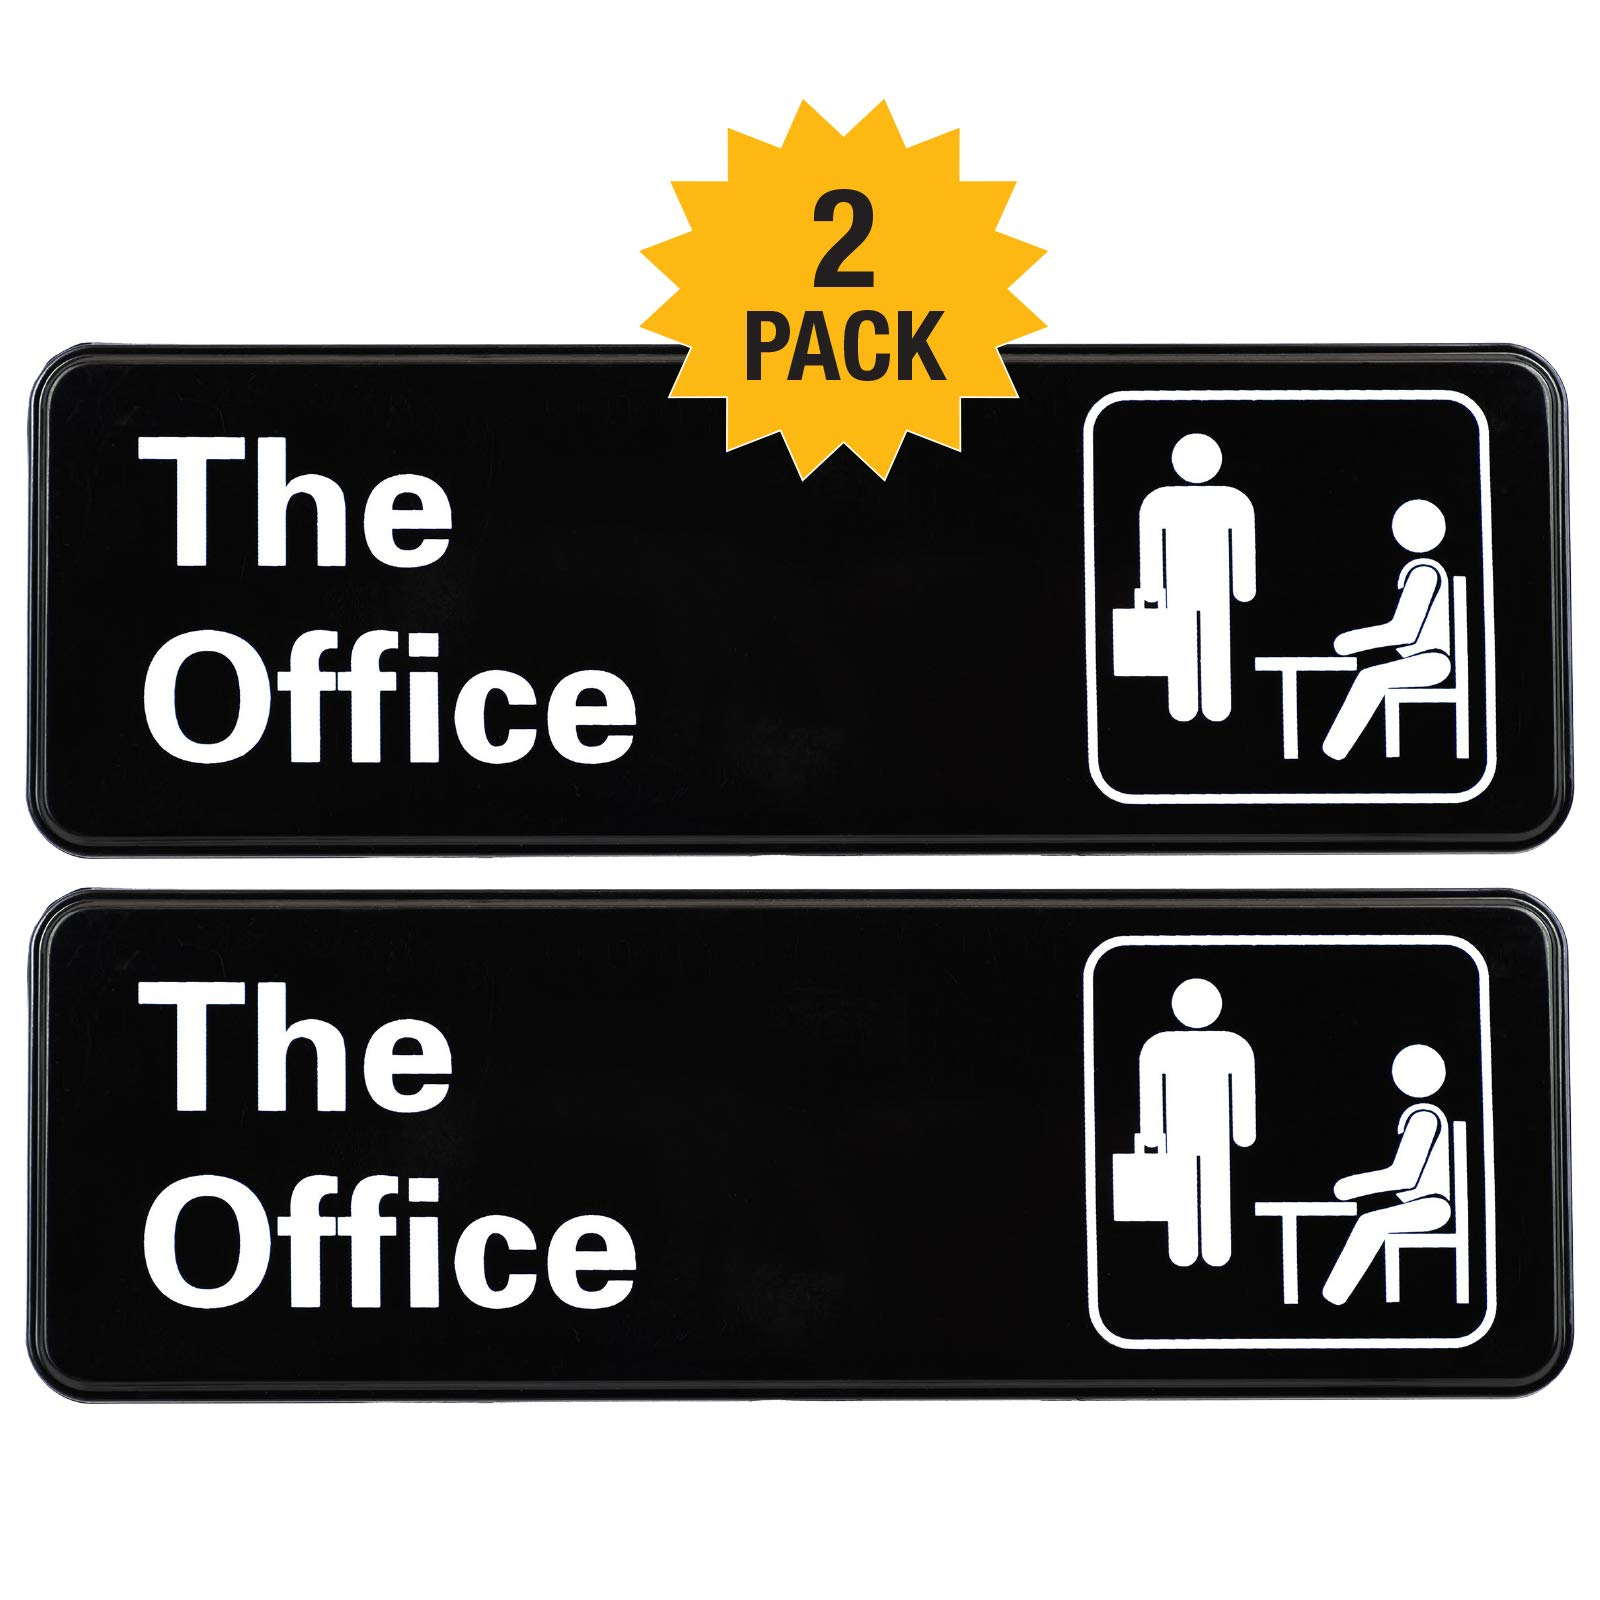 The Office Sign: Easy to Mount Informative Plastic Sign with Symbols, 9''x3'' Sign 2-Pack